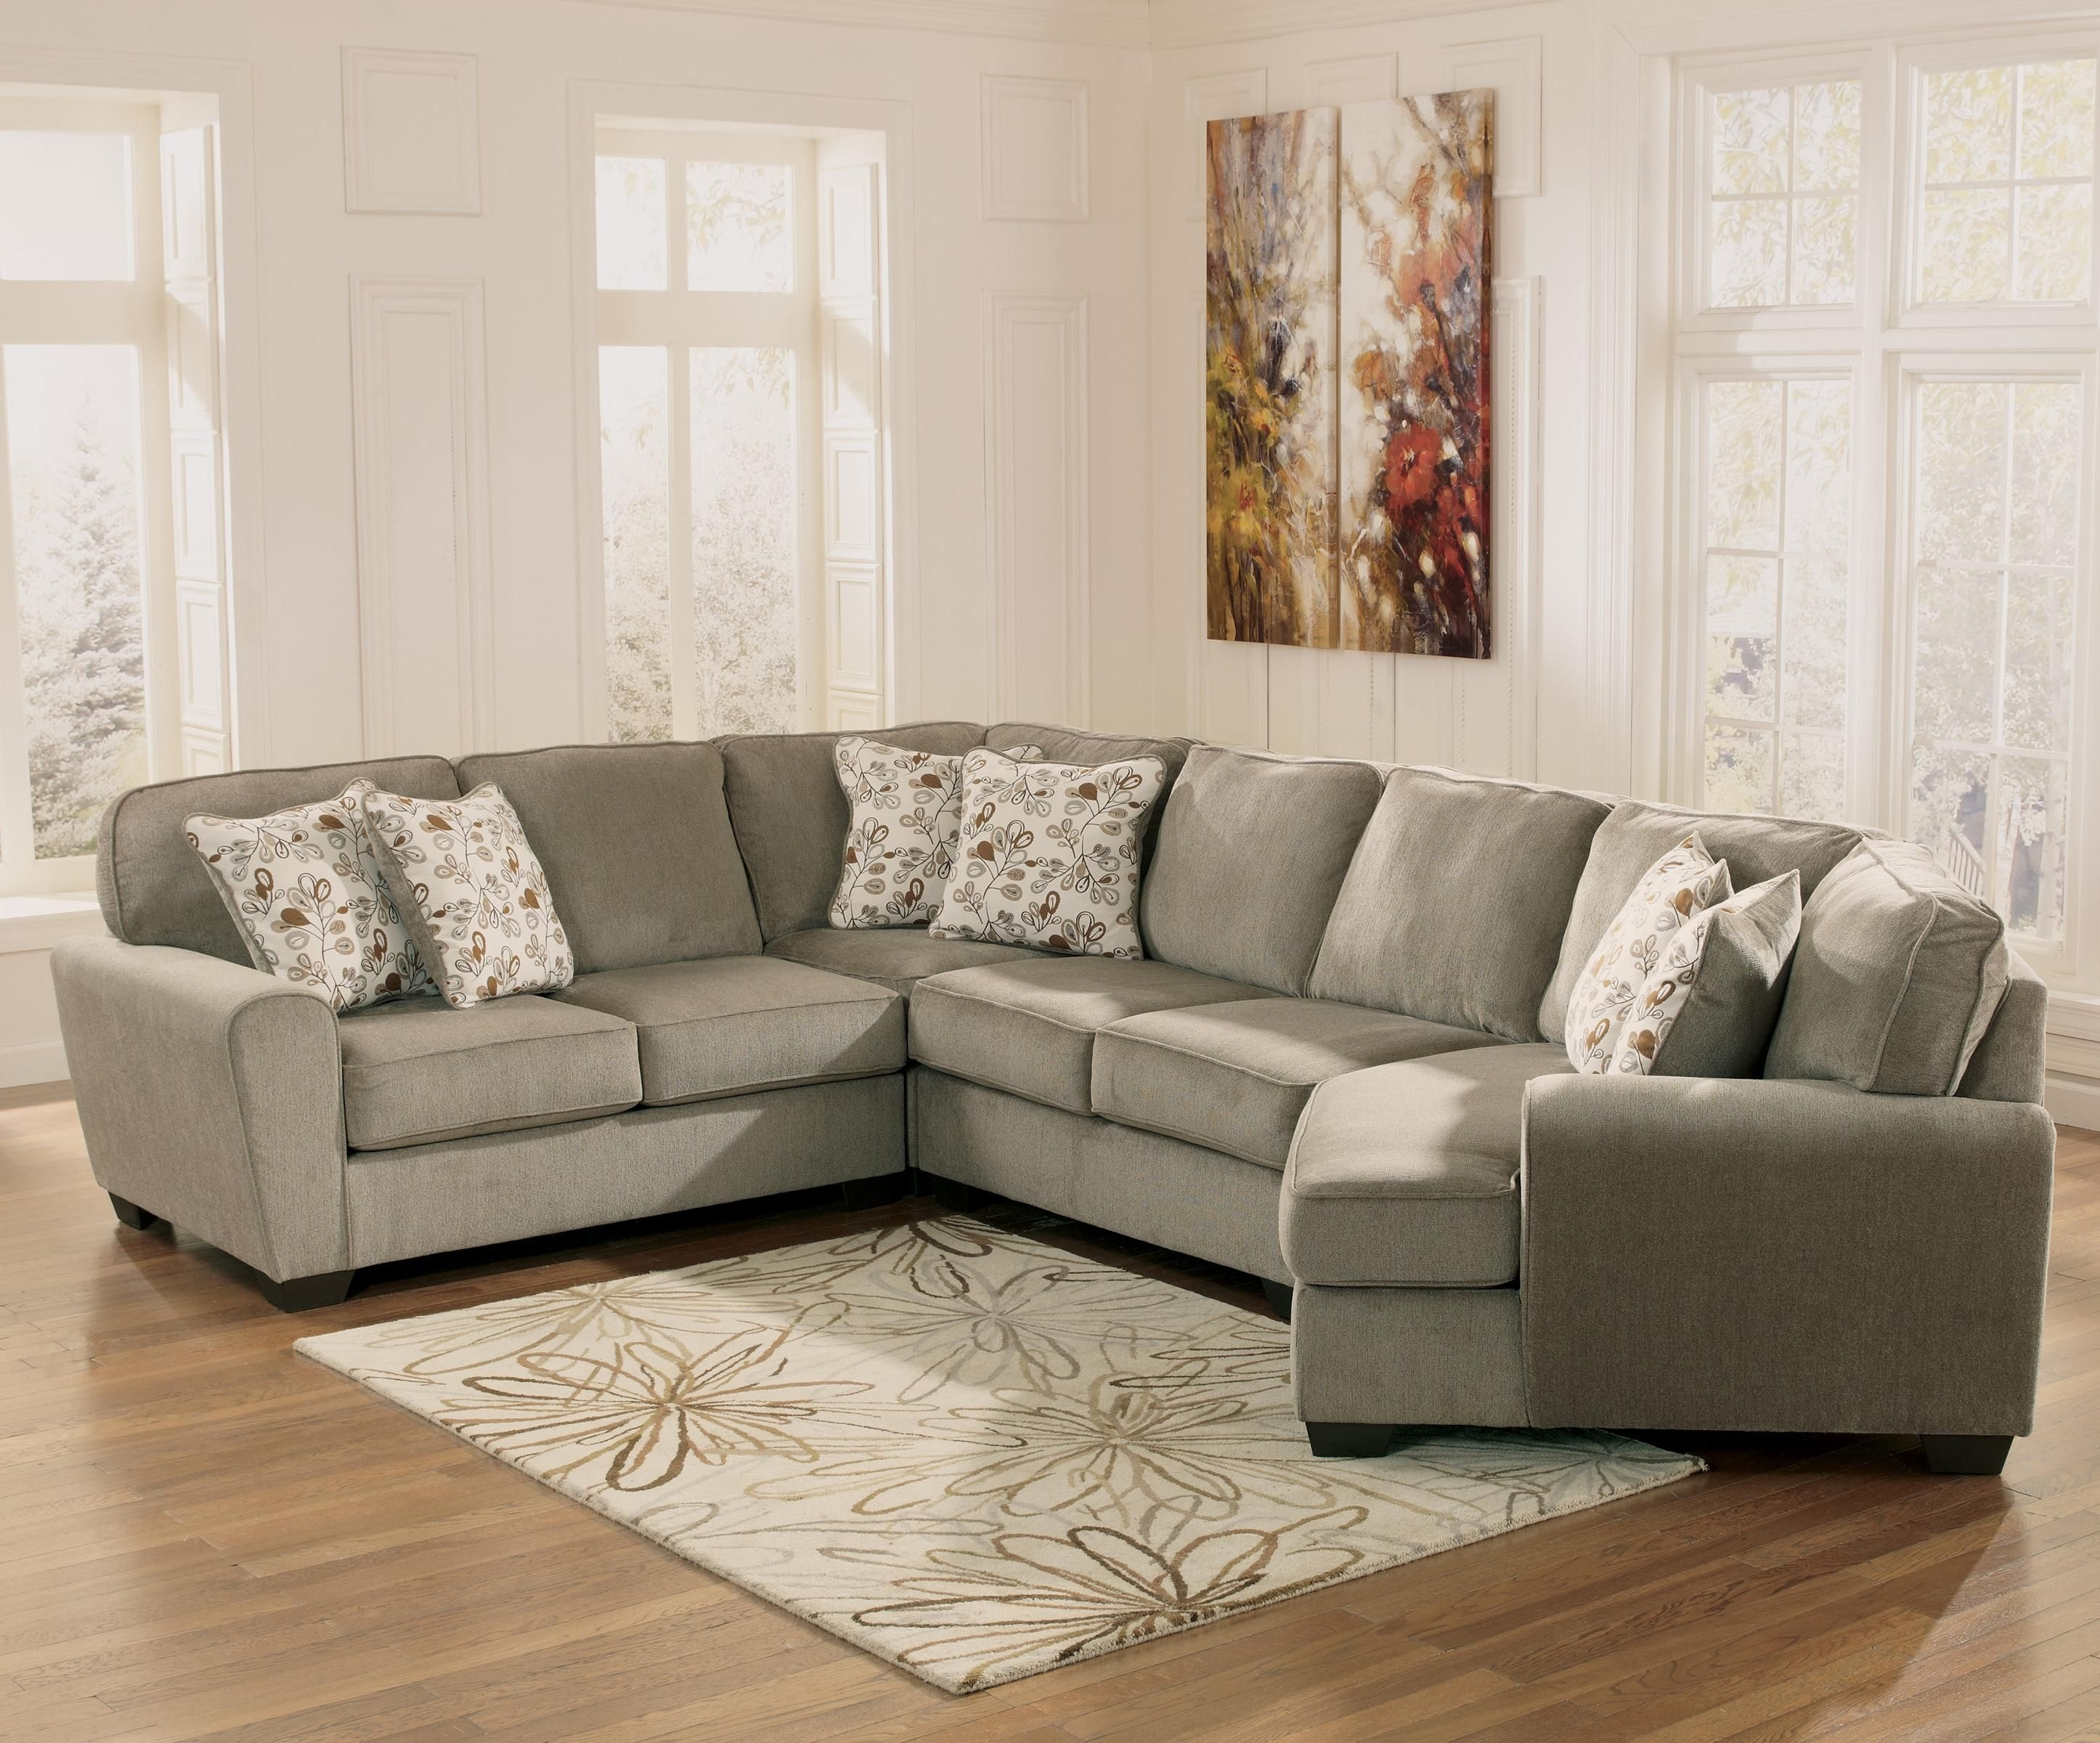 Patola Park – Patina 4 Piece Small Sectional With Right Cuddler In Newmarket Ontario Sectional Sofas (Image 7 of 10)